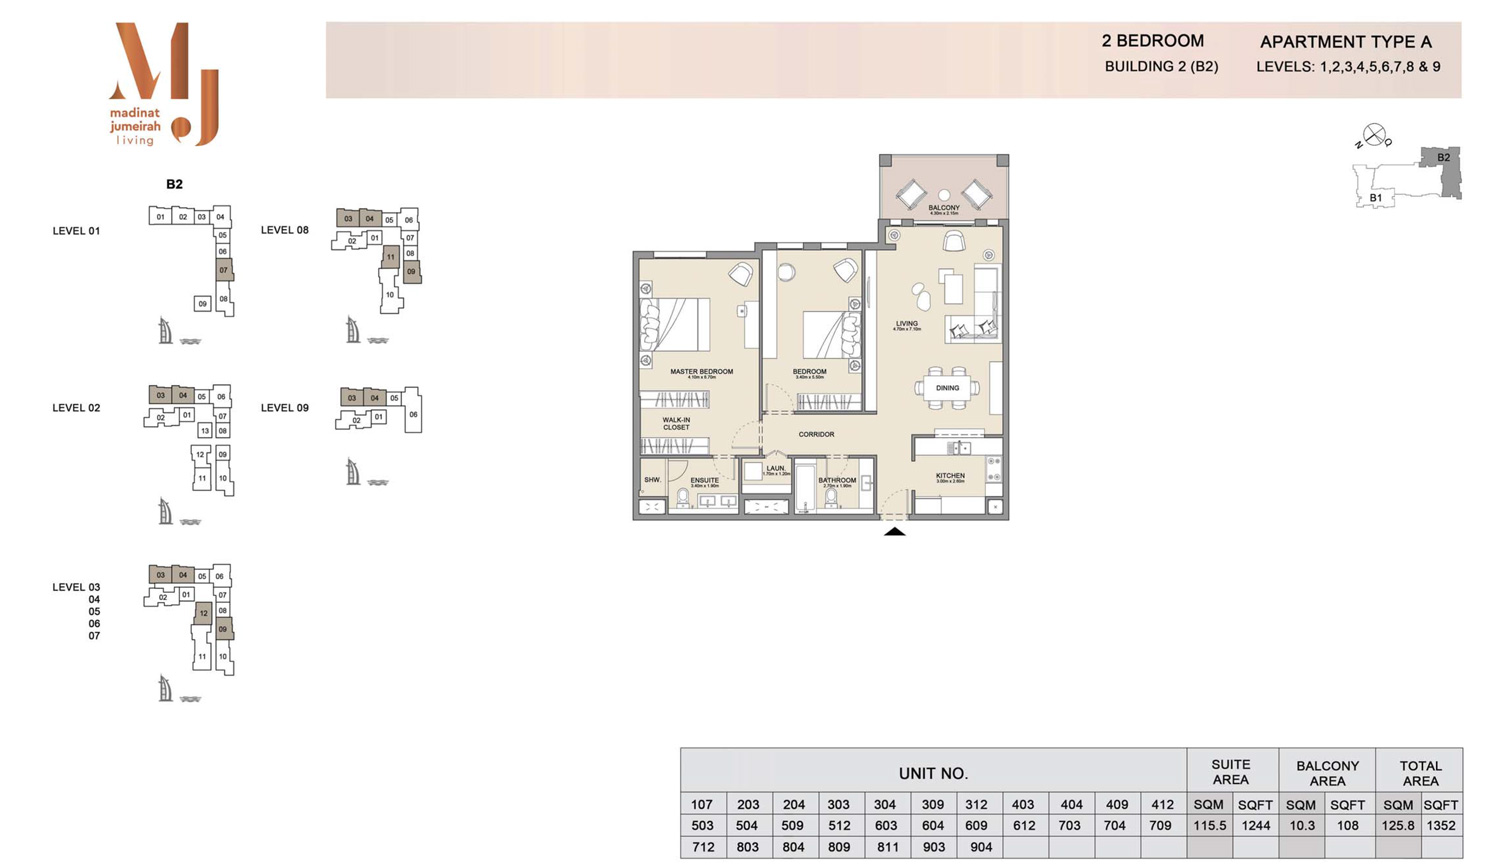 2 Bedroom B 2, Type A, Levels 1 to 9, Size 1352 sq.ft